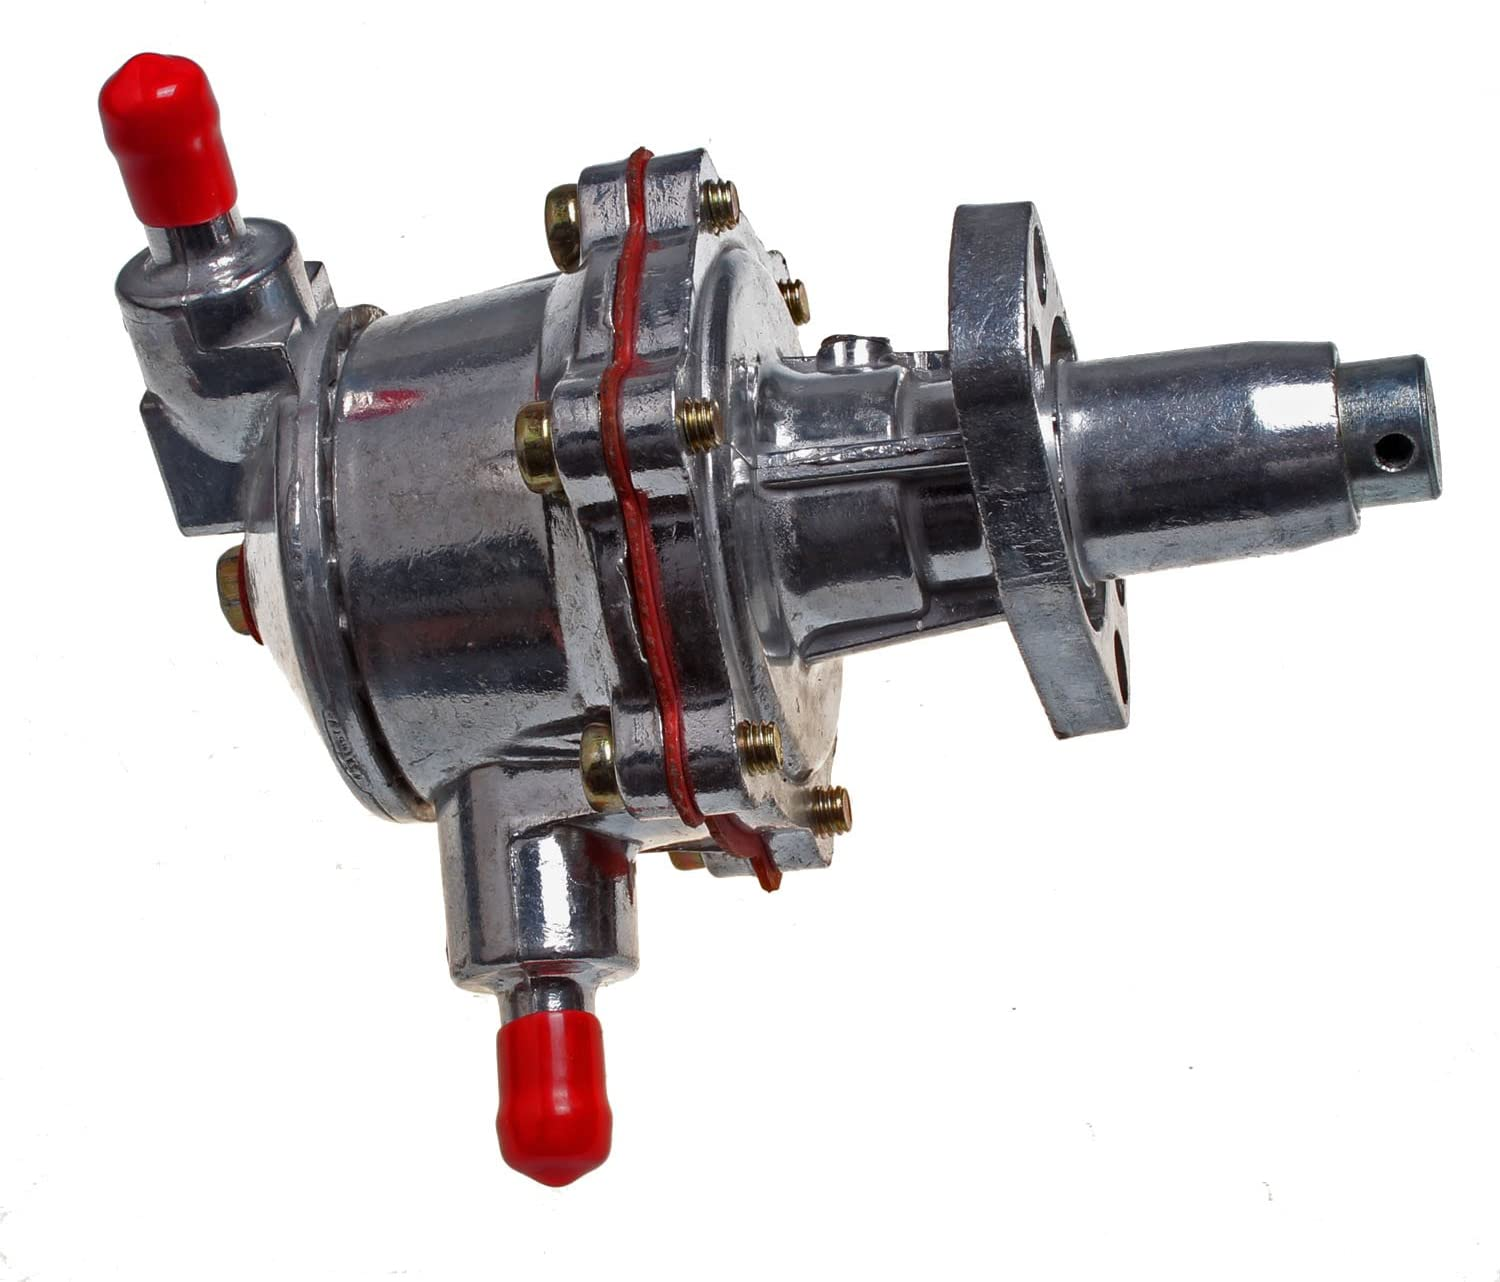 Mover Parts Fuel Gorgeous Transfer Pump for 176-7712 Caterpillar 226 216 Los Angeles Mall